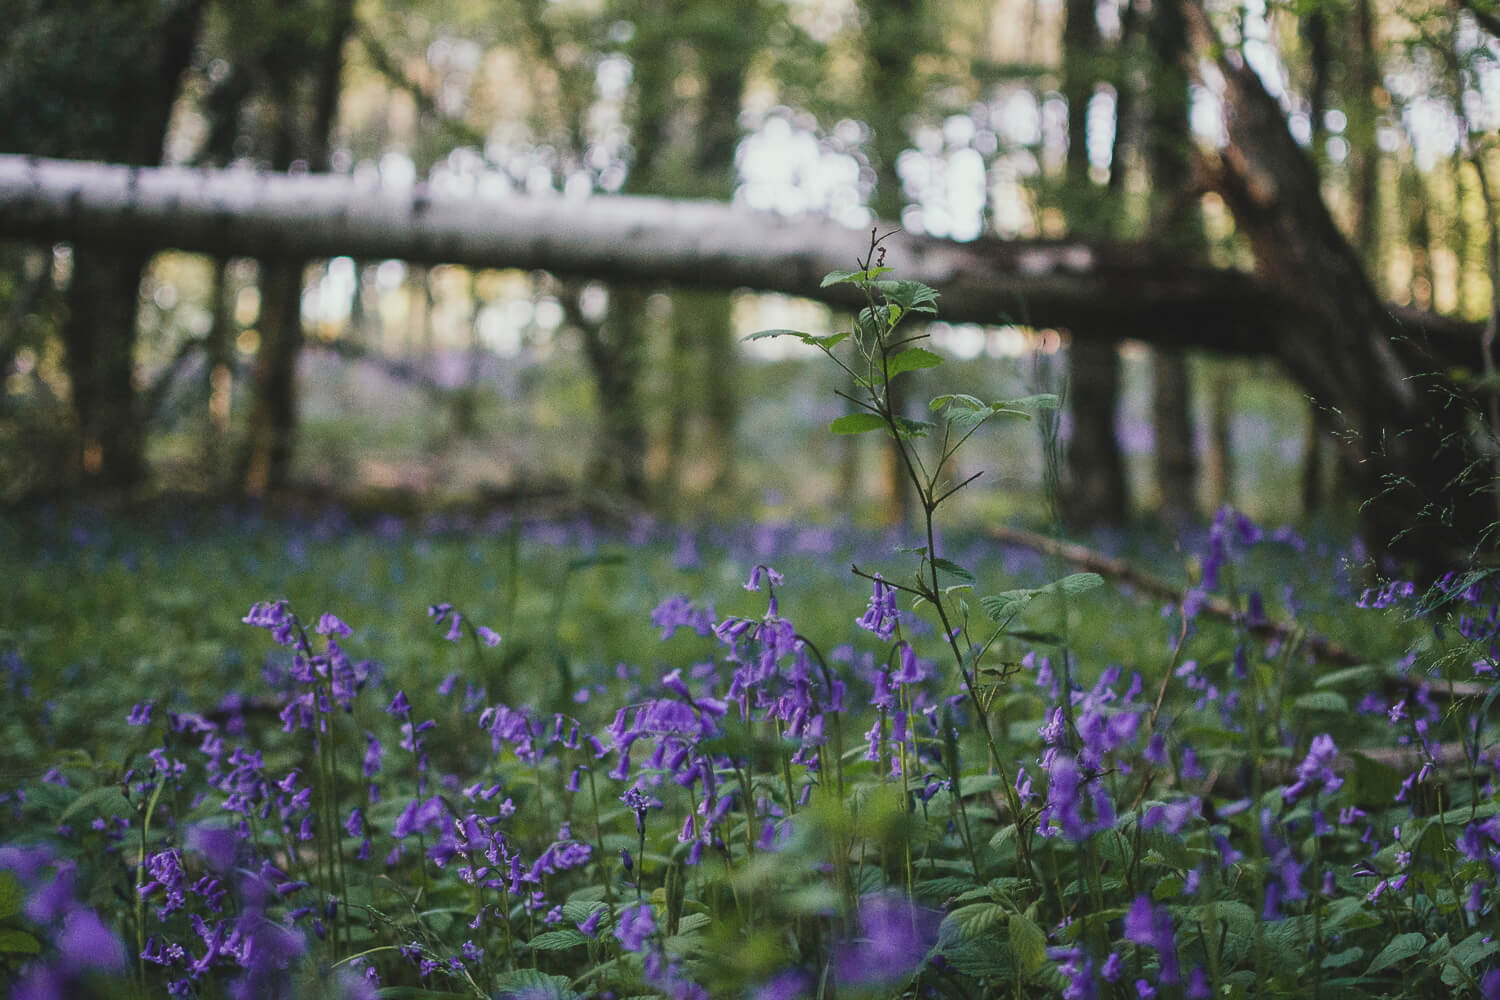 A carpet of bluebells in a woods with a fallen tree